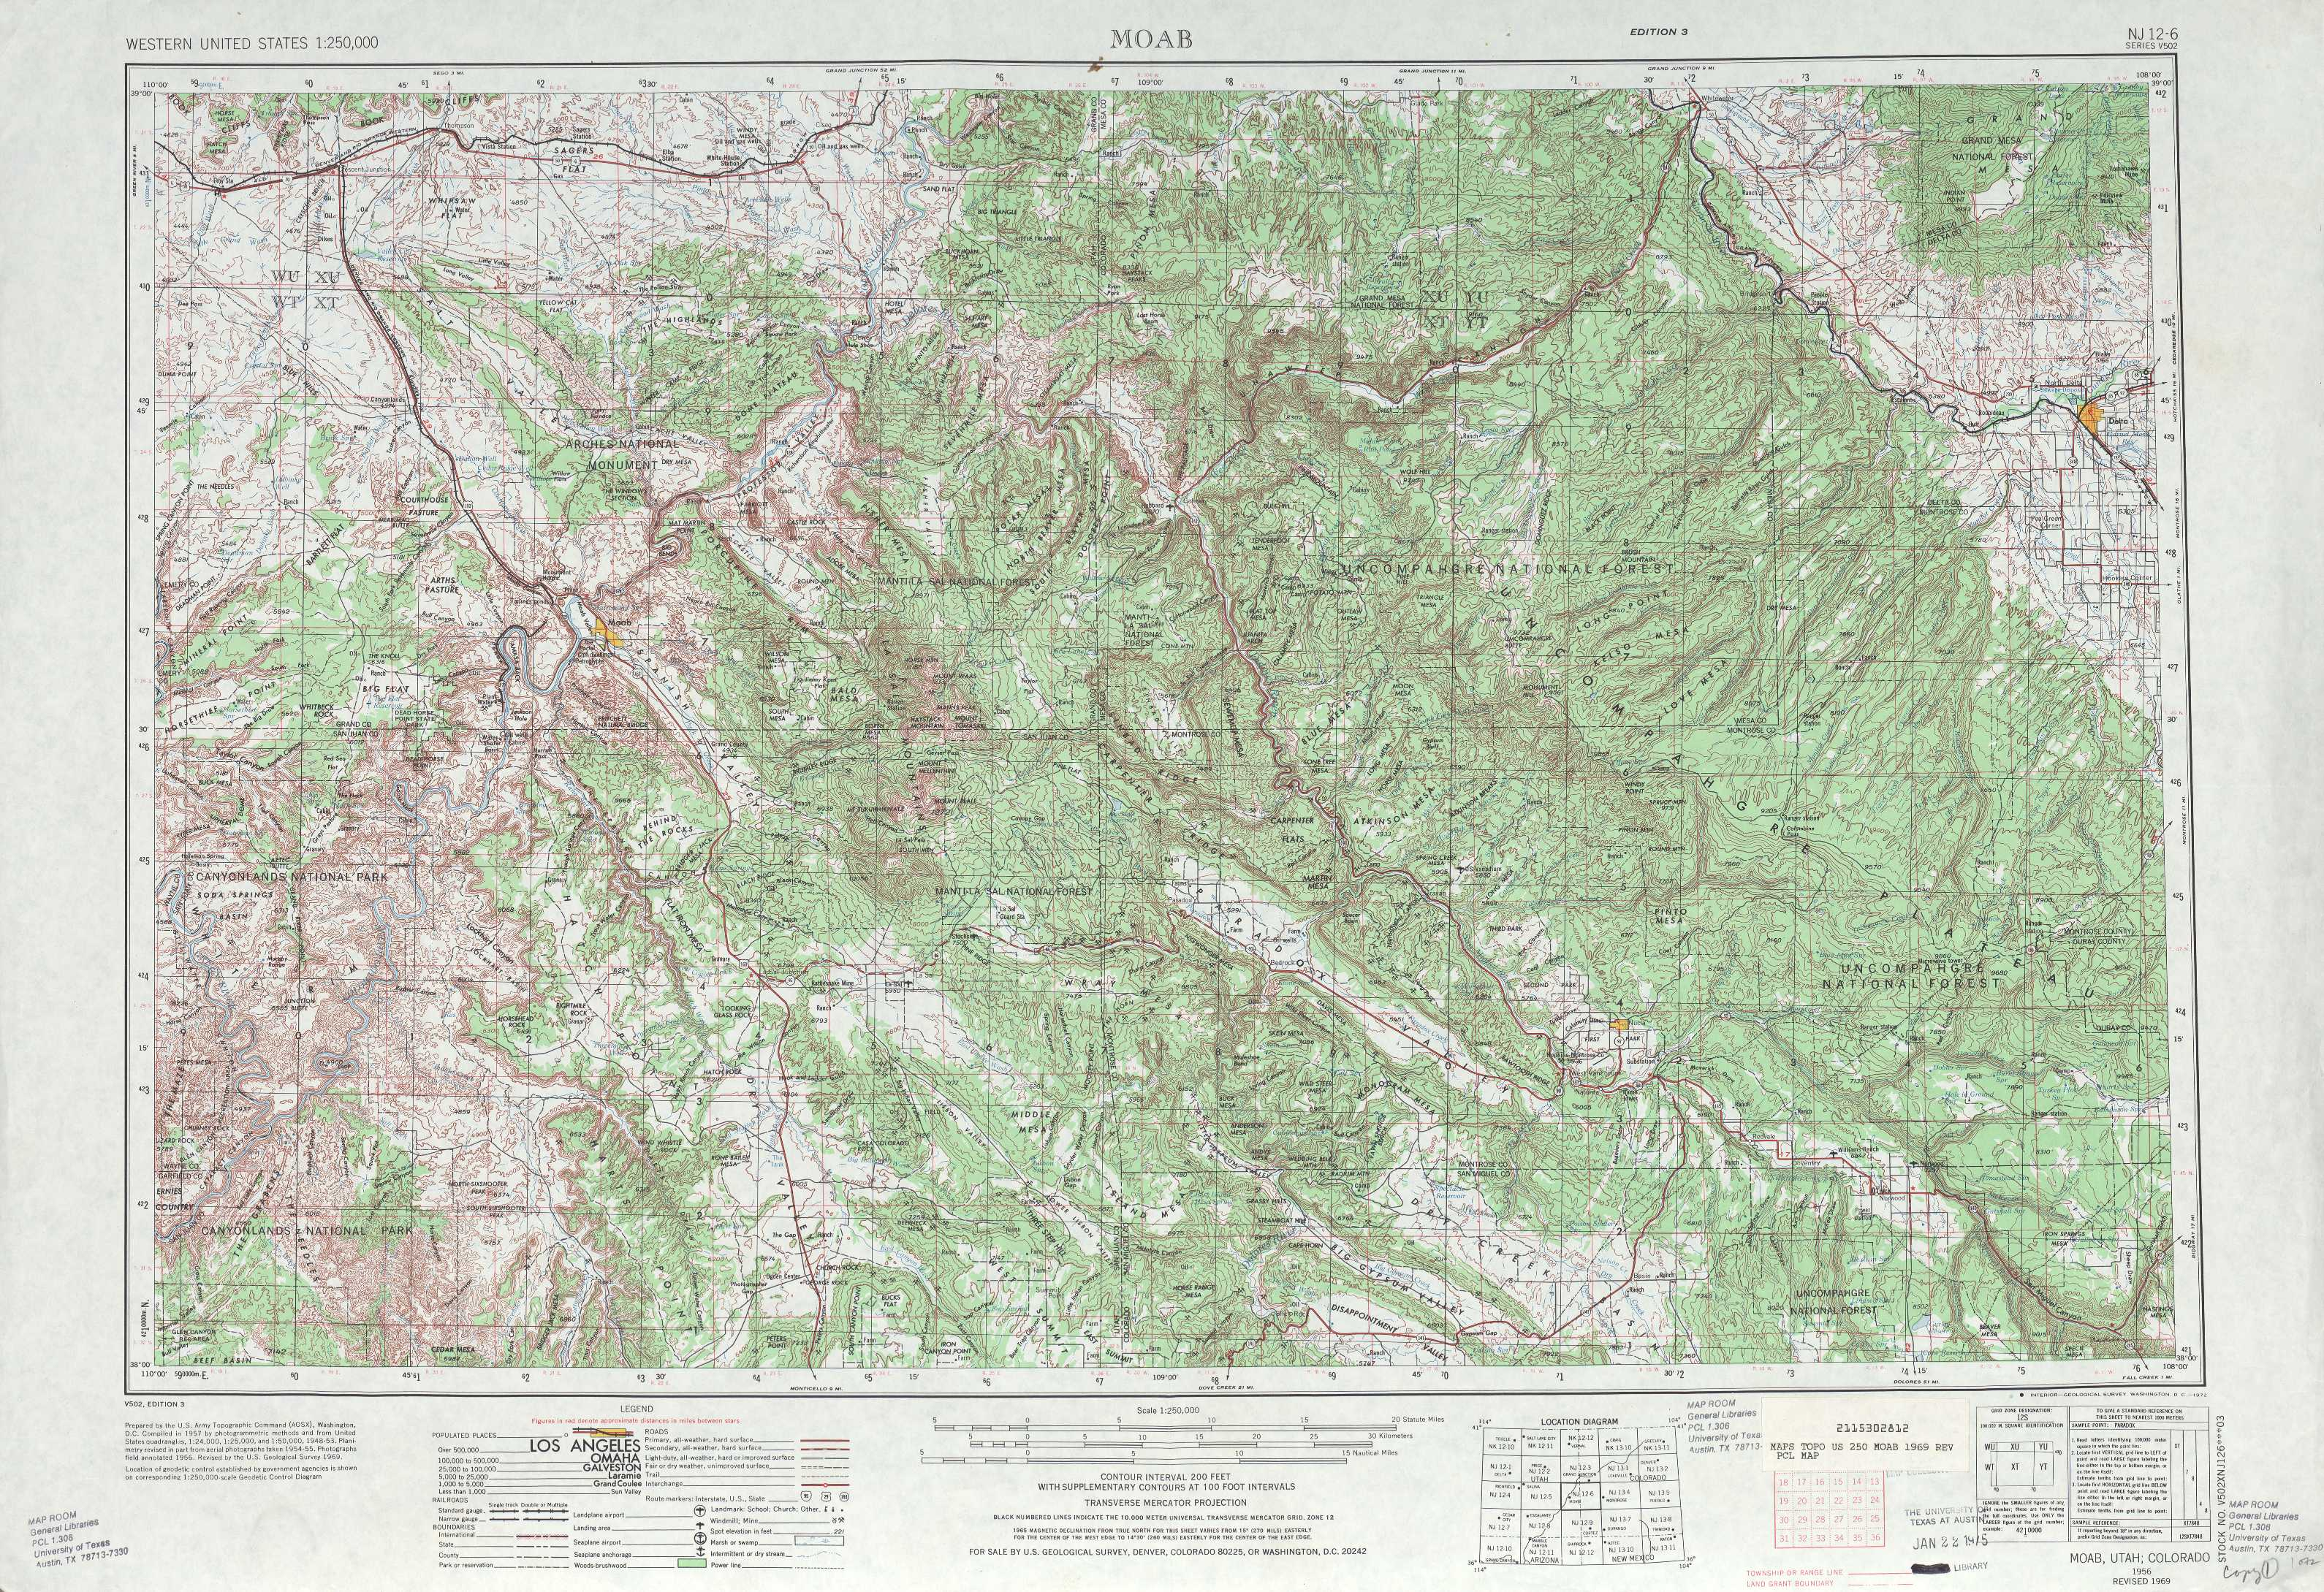 Usgs Topo Map My Blog - Topographical us map